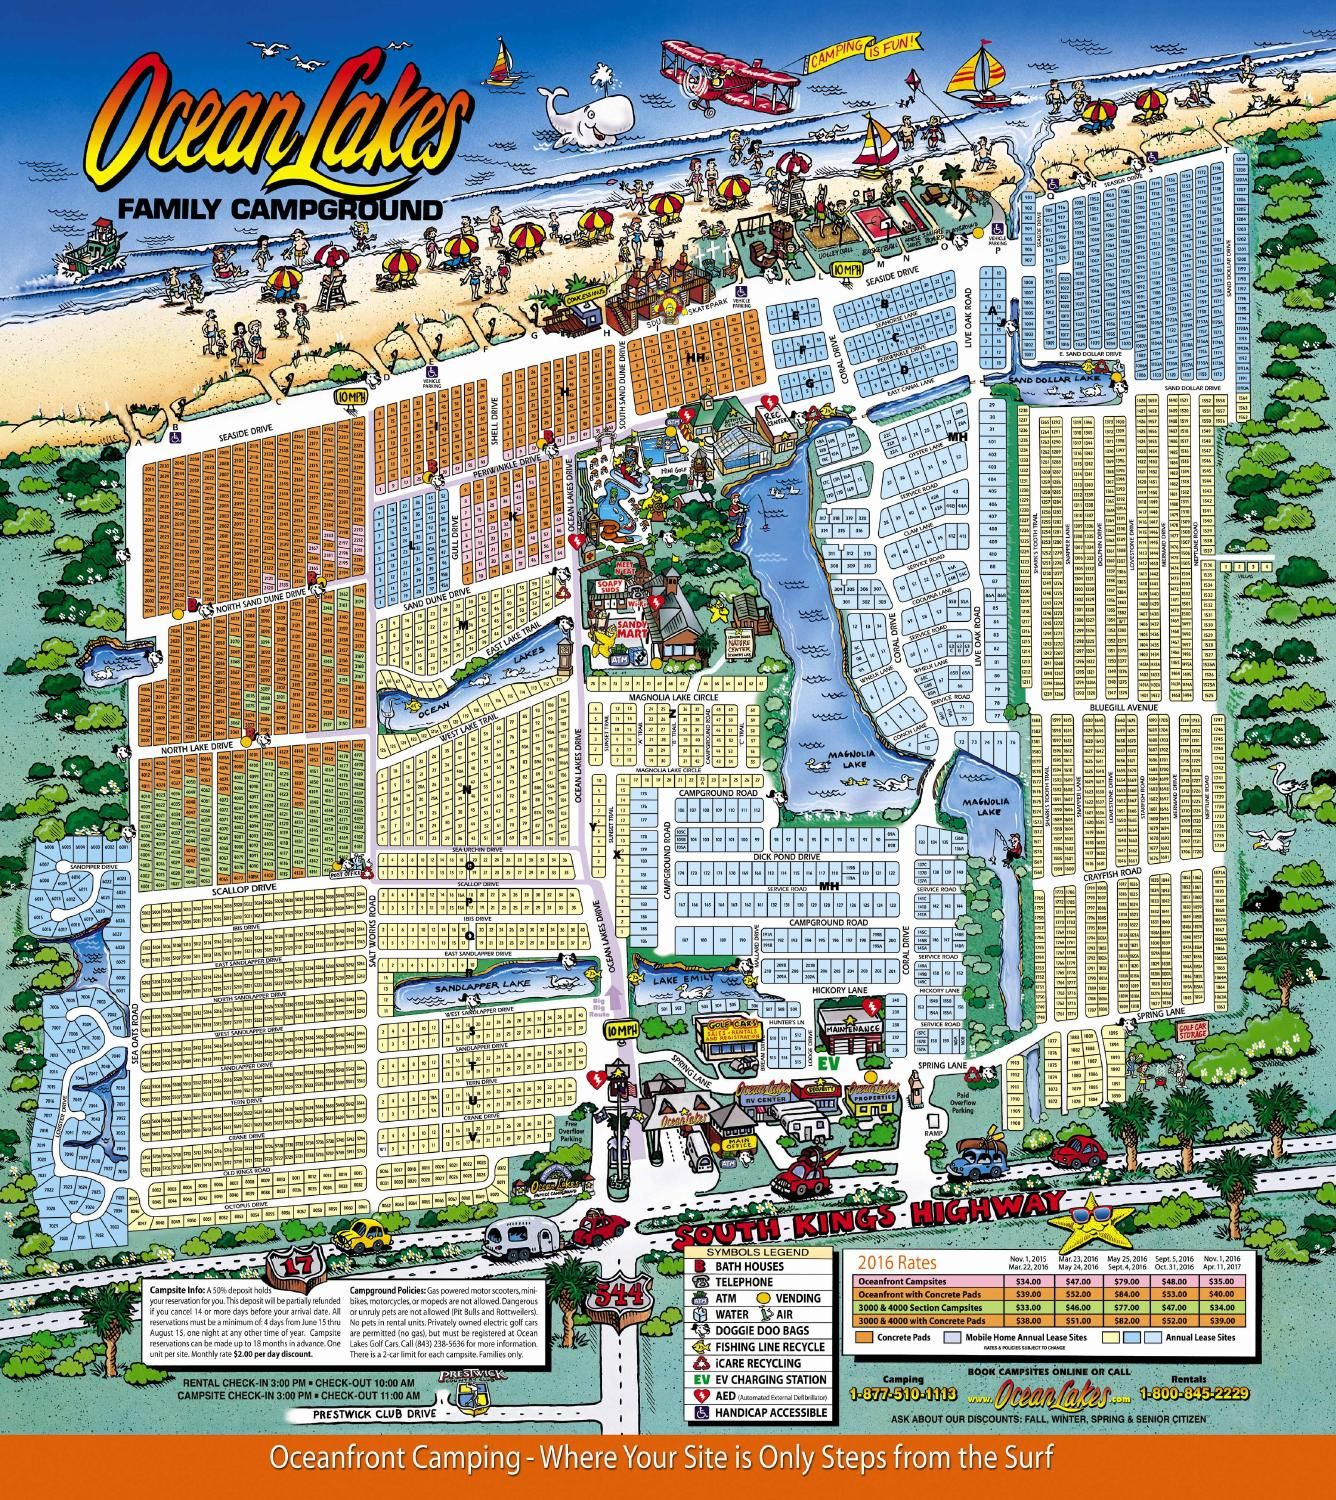 Ocean Lakes Family Campground map Beach camping, Myrtle